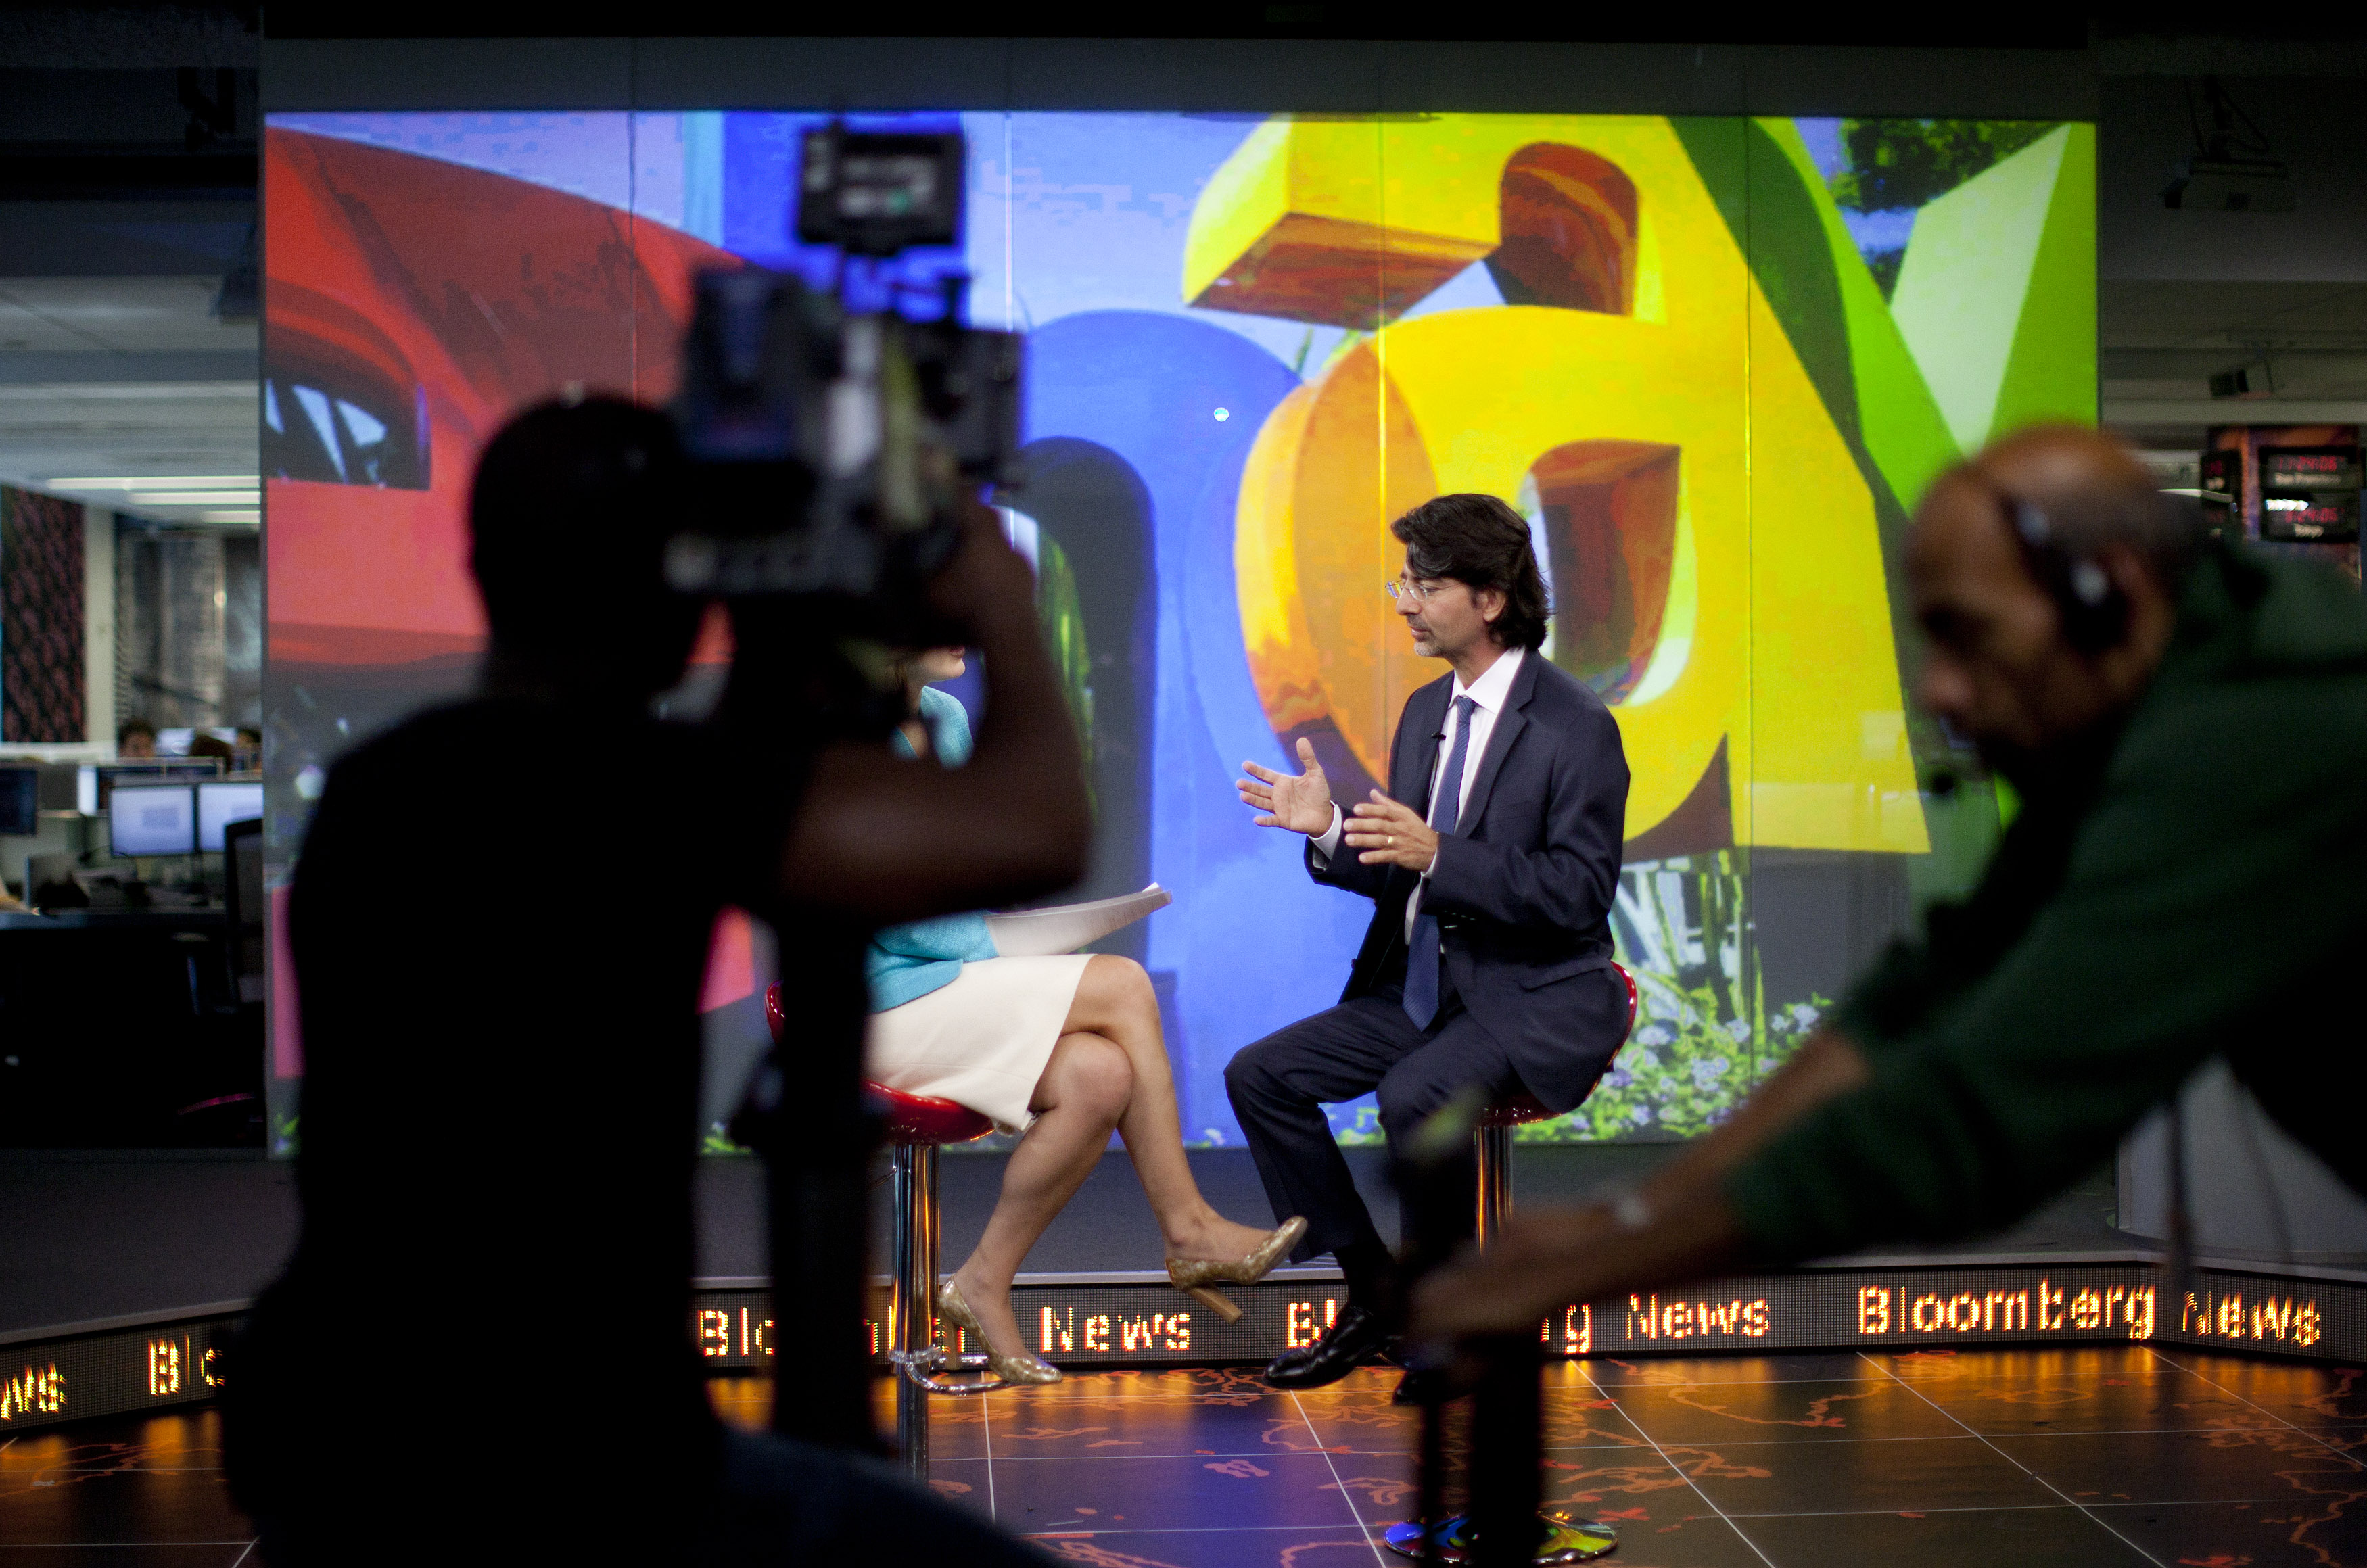 Ebay Inc. Chairman And Founder Omidyar Television Interview